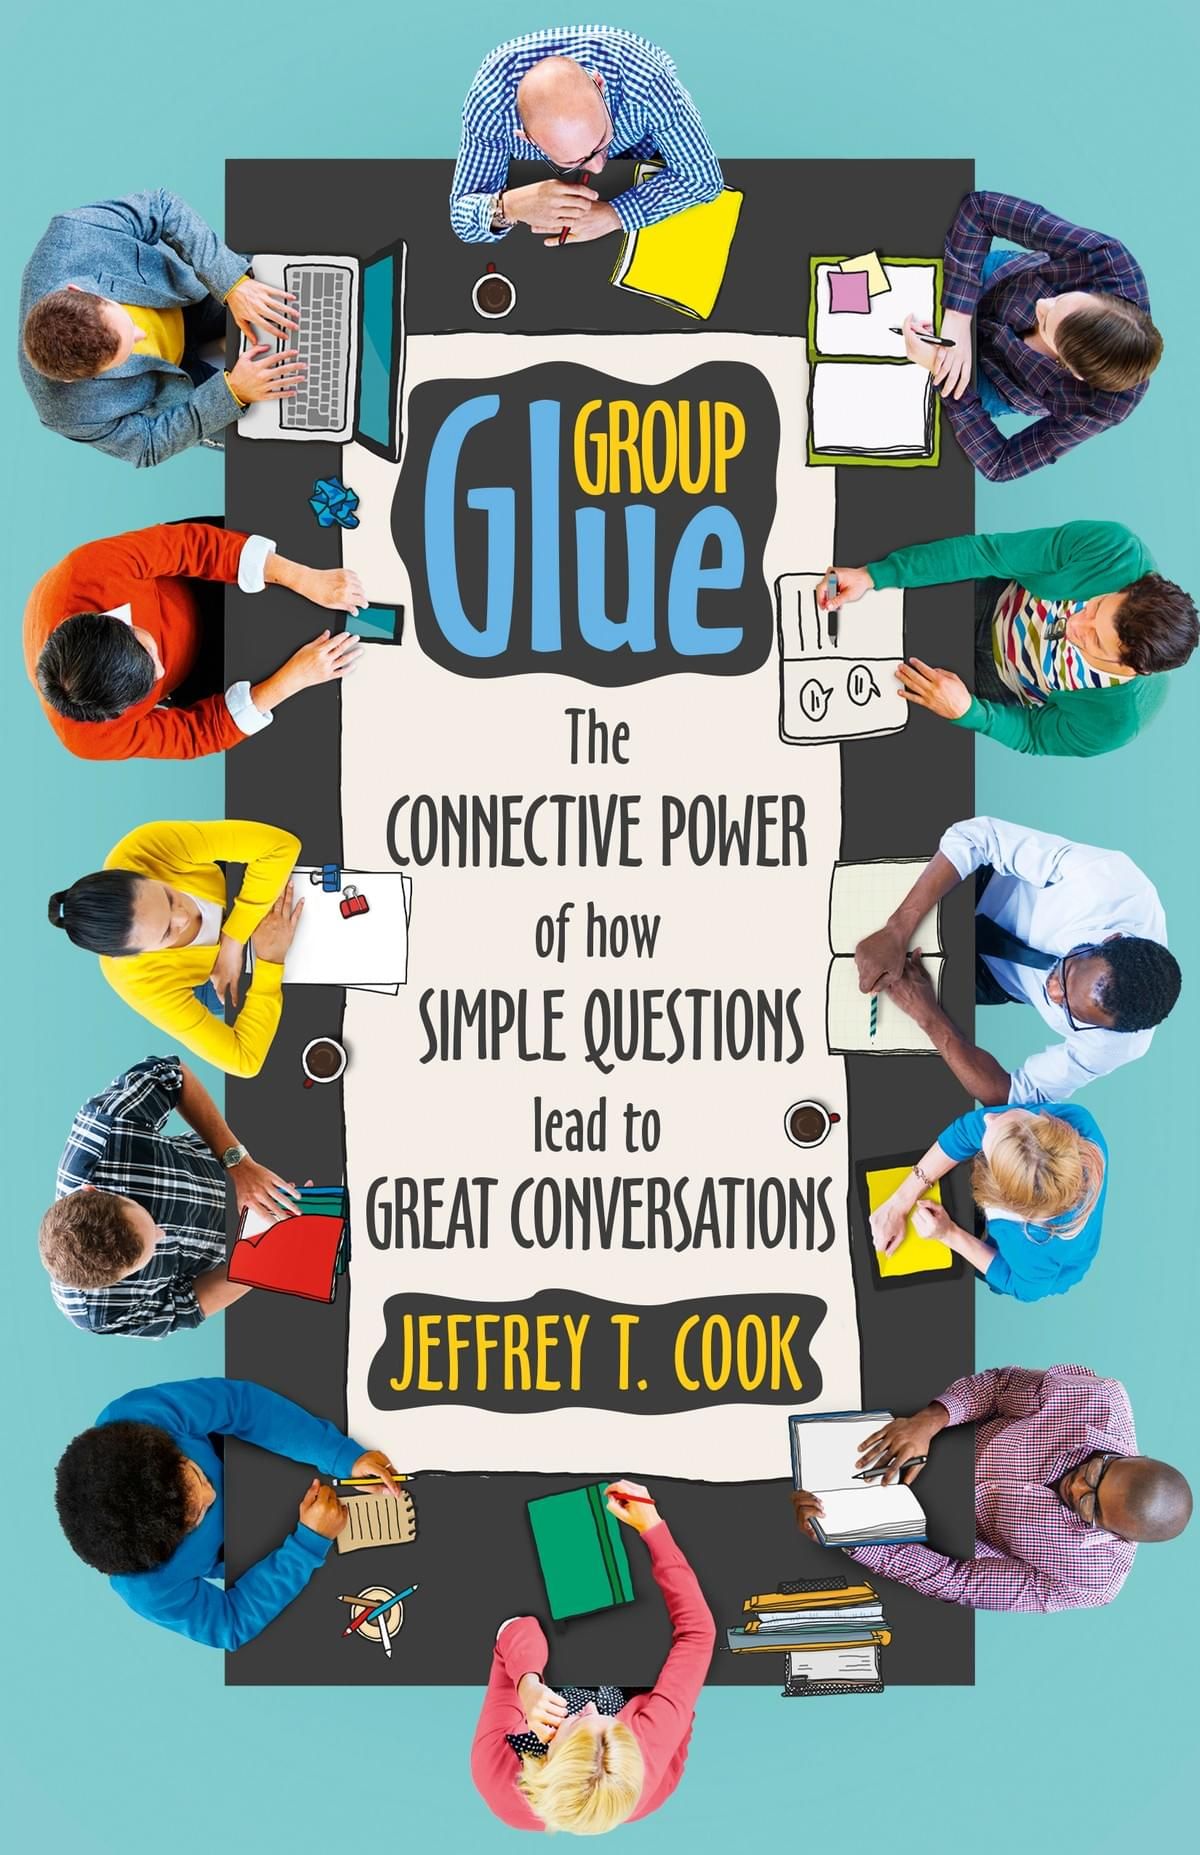 GroupGlue at Amazon.com